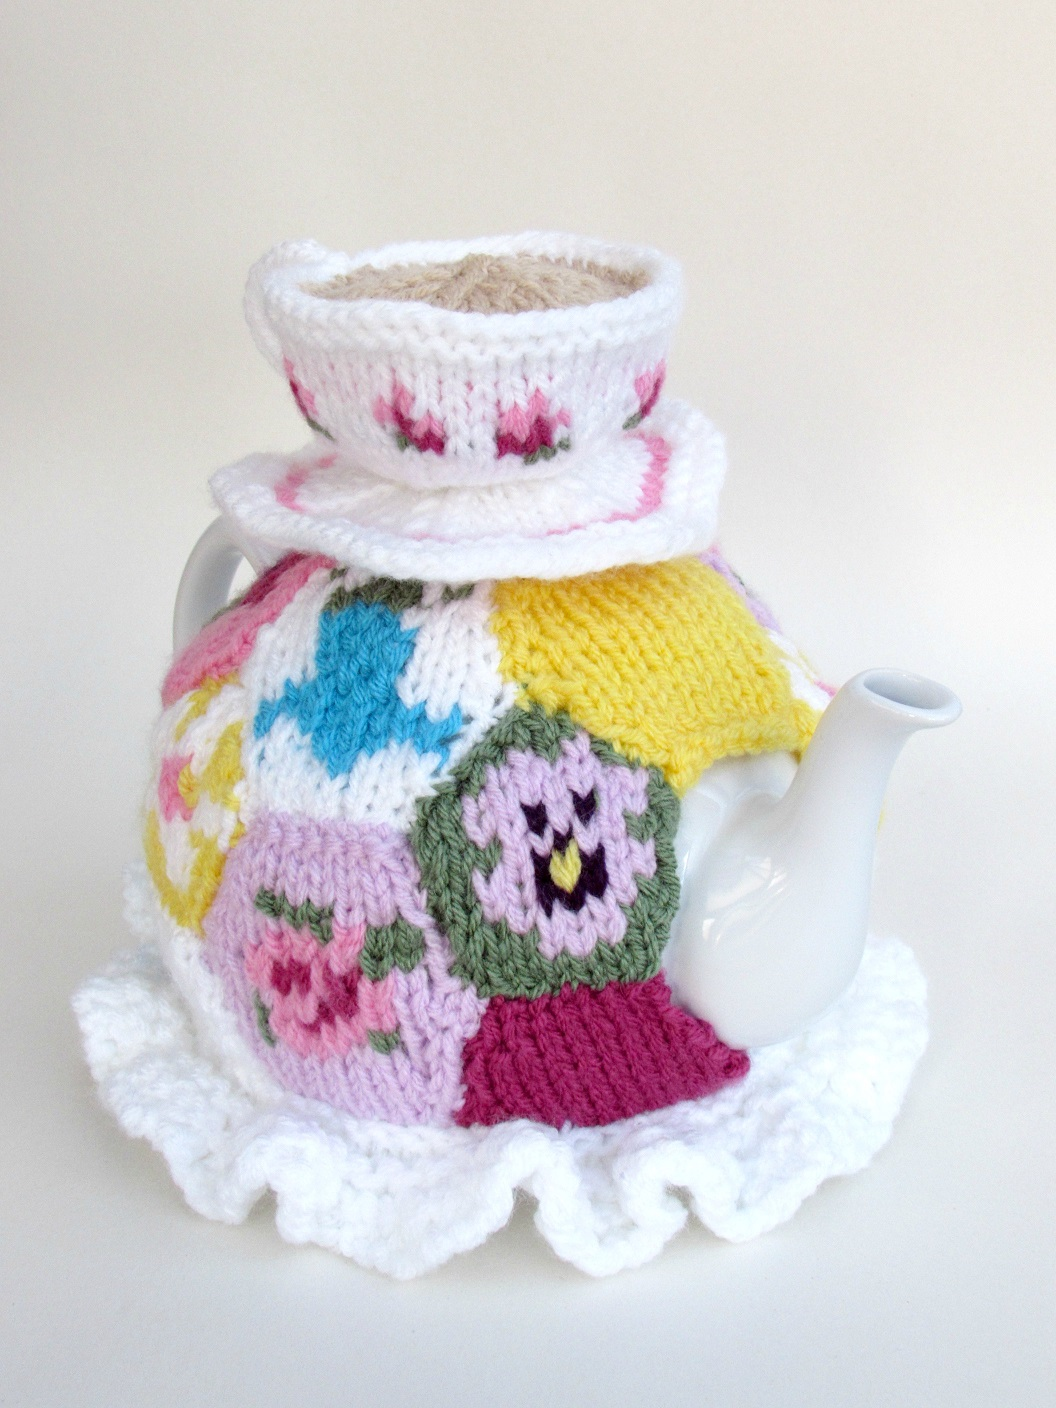 Granny Patchwork knitting pattern